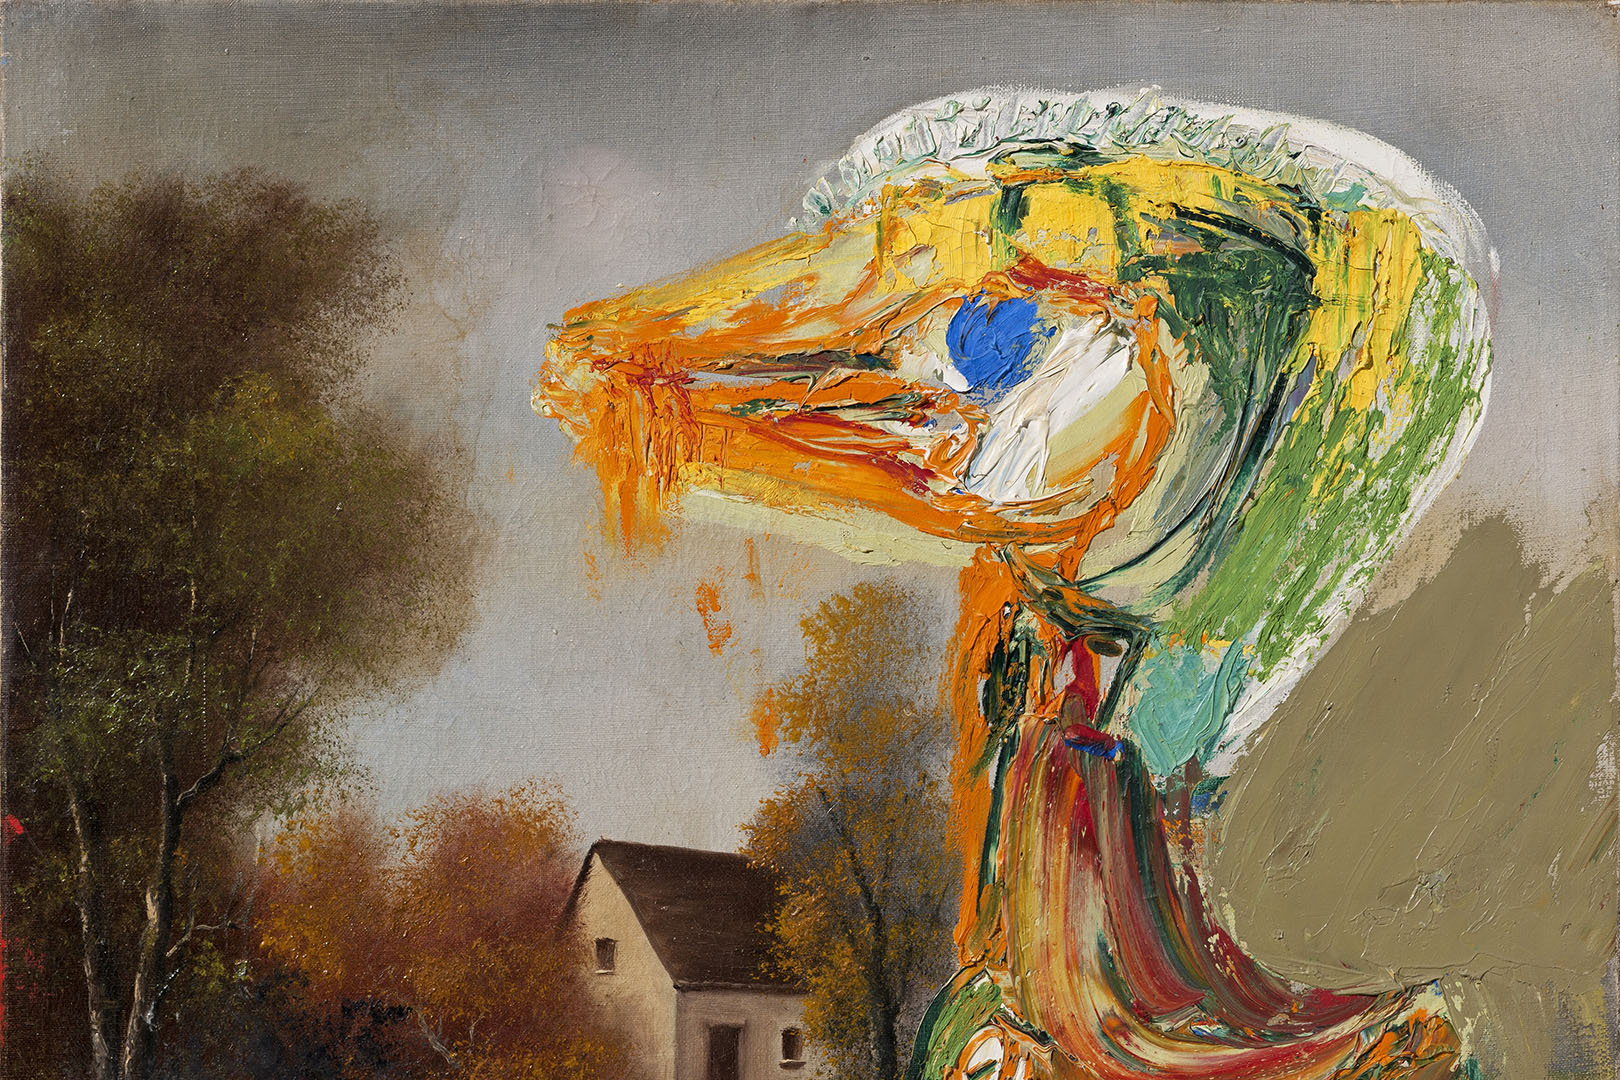 The Disquieting Duckling, Asger Jorn 1959. Photo: Lars Bay